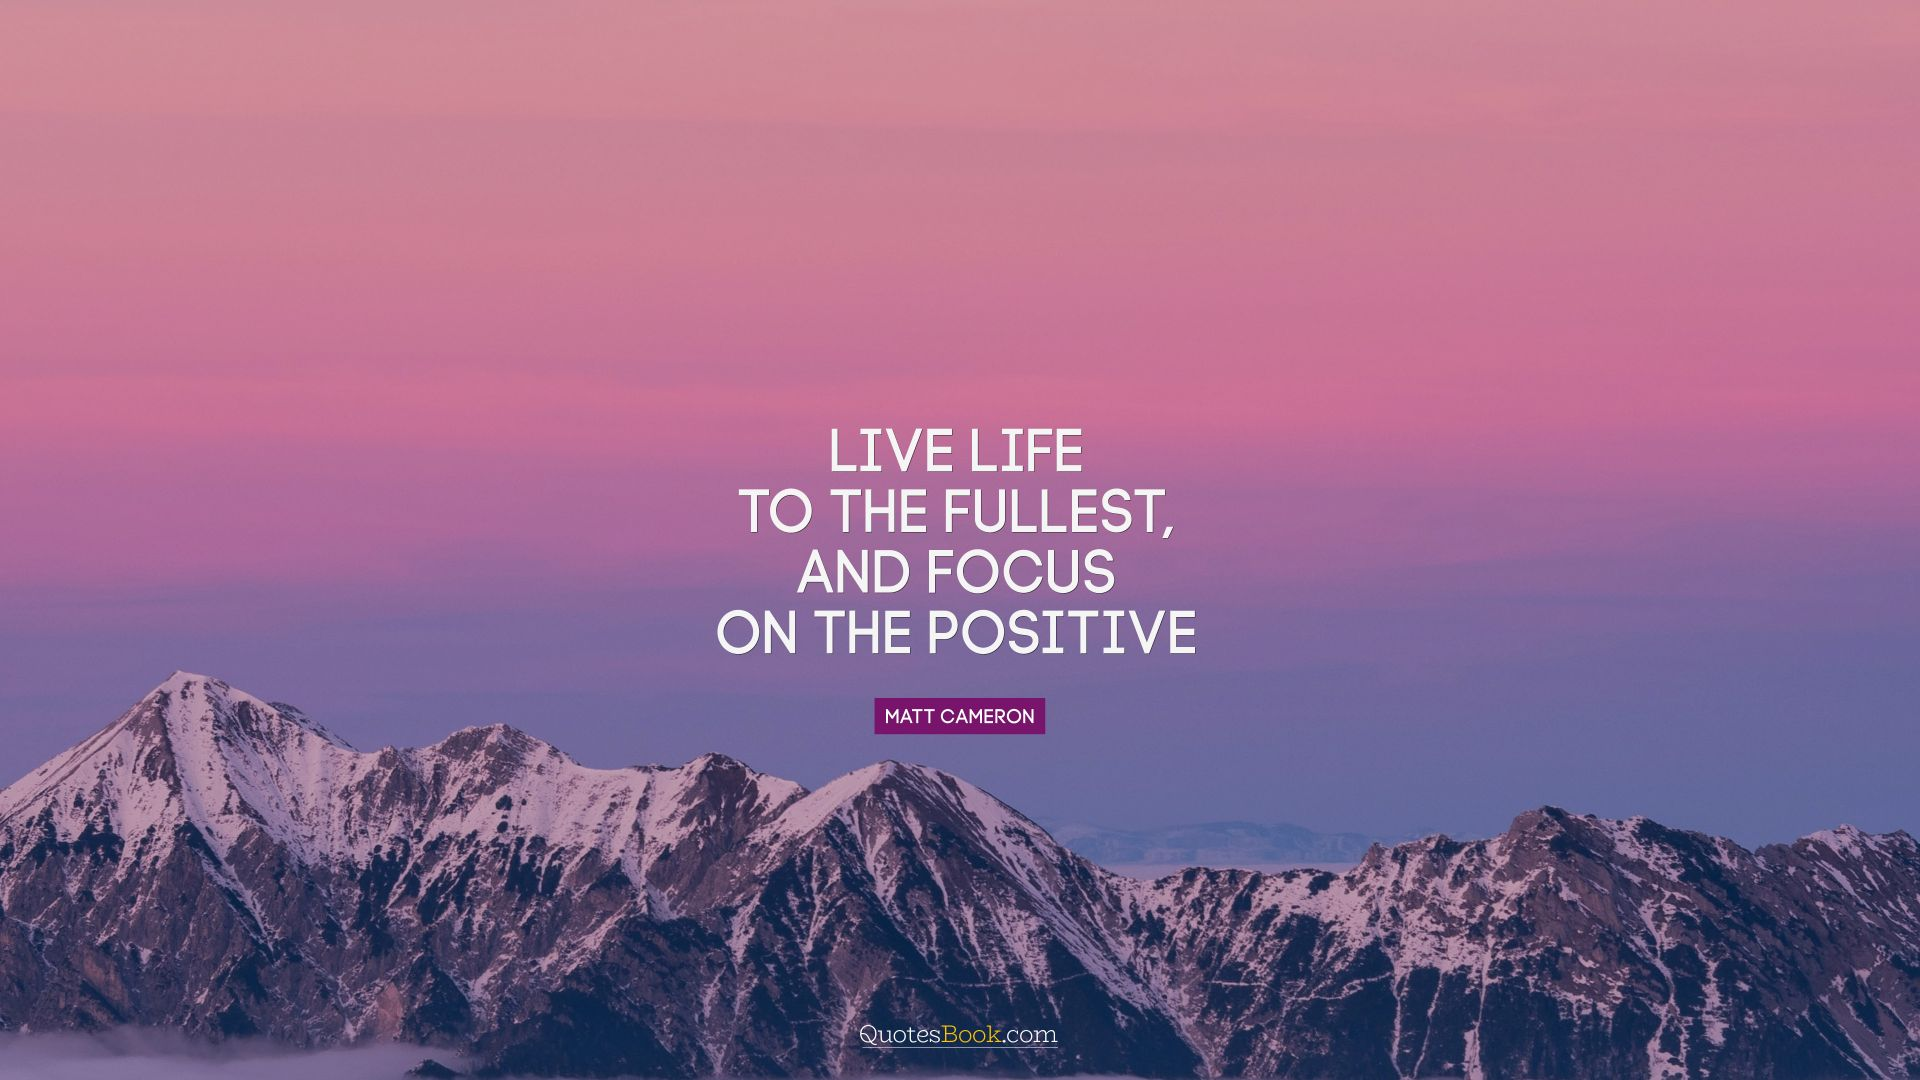 Live life to the fullest, and focus on the positive. - Quote by Matt Cameron